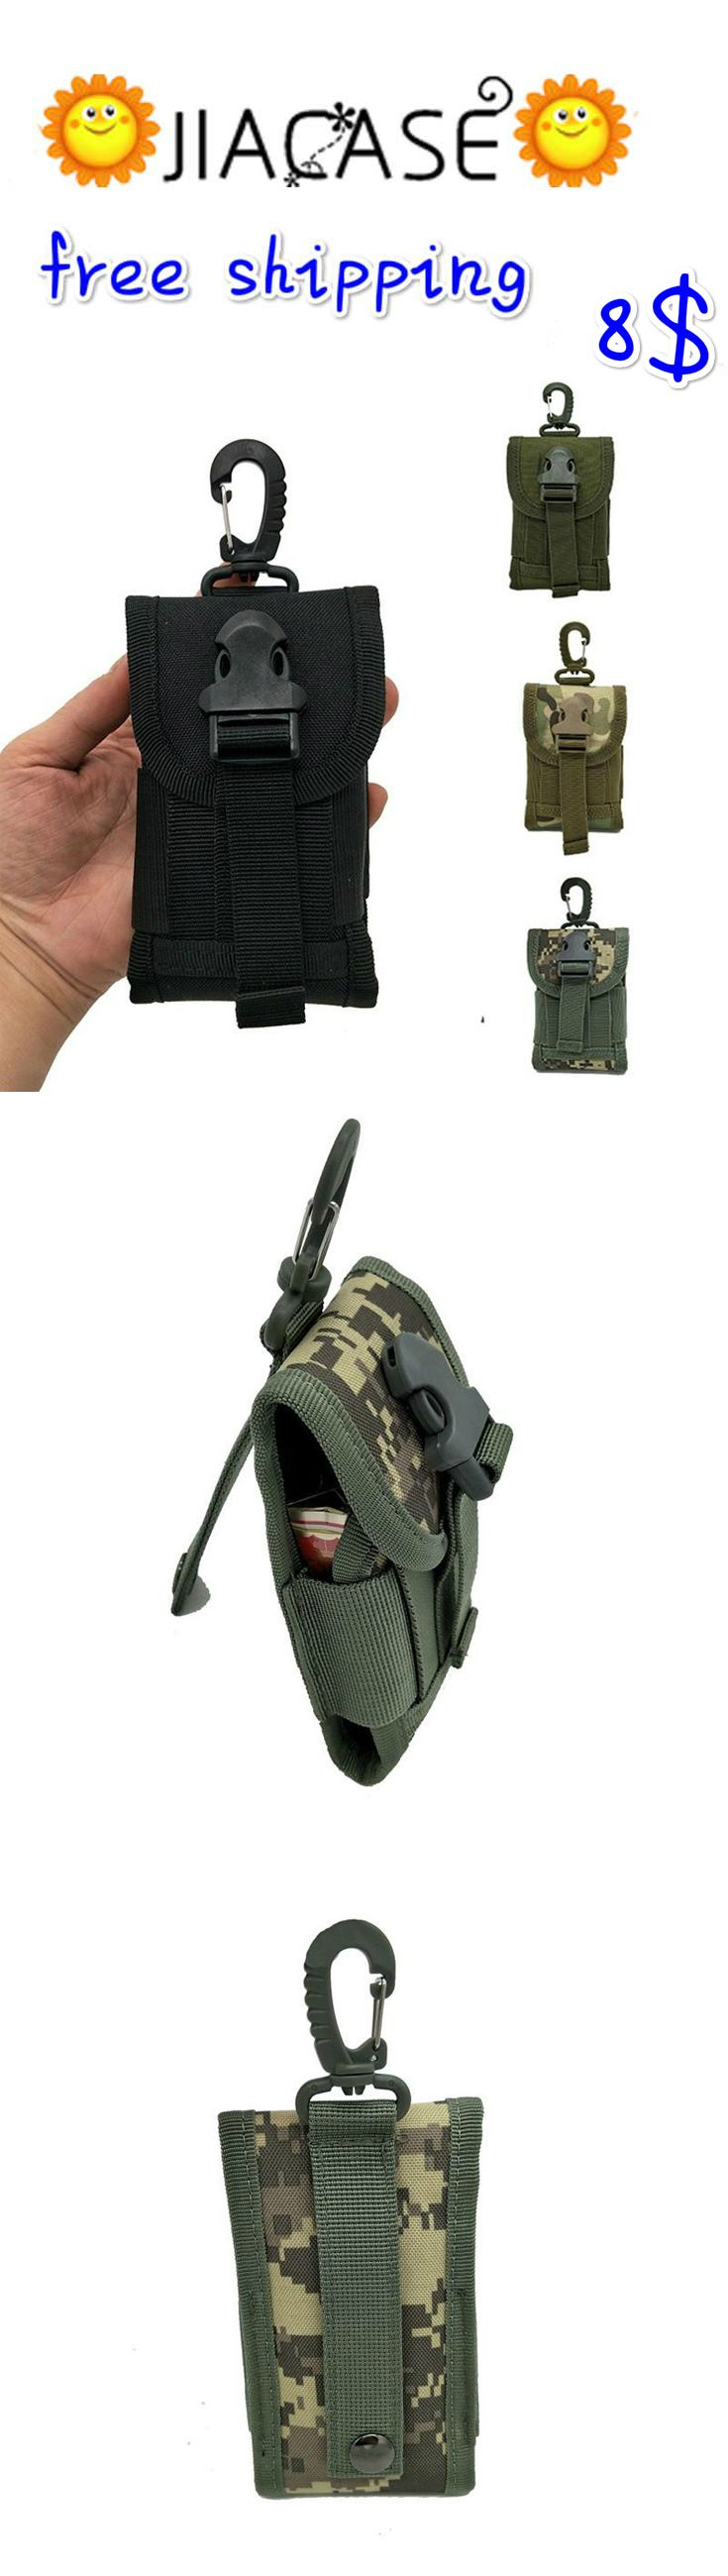 #Universal #Waterproof #Outdoor #Sport Bag #Army #Tactical #Pouch for Mobile Phone #Hook Of The Bag Cover #Case